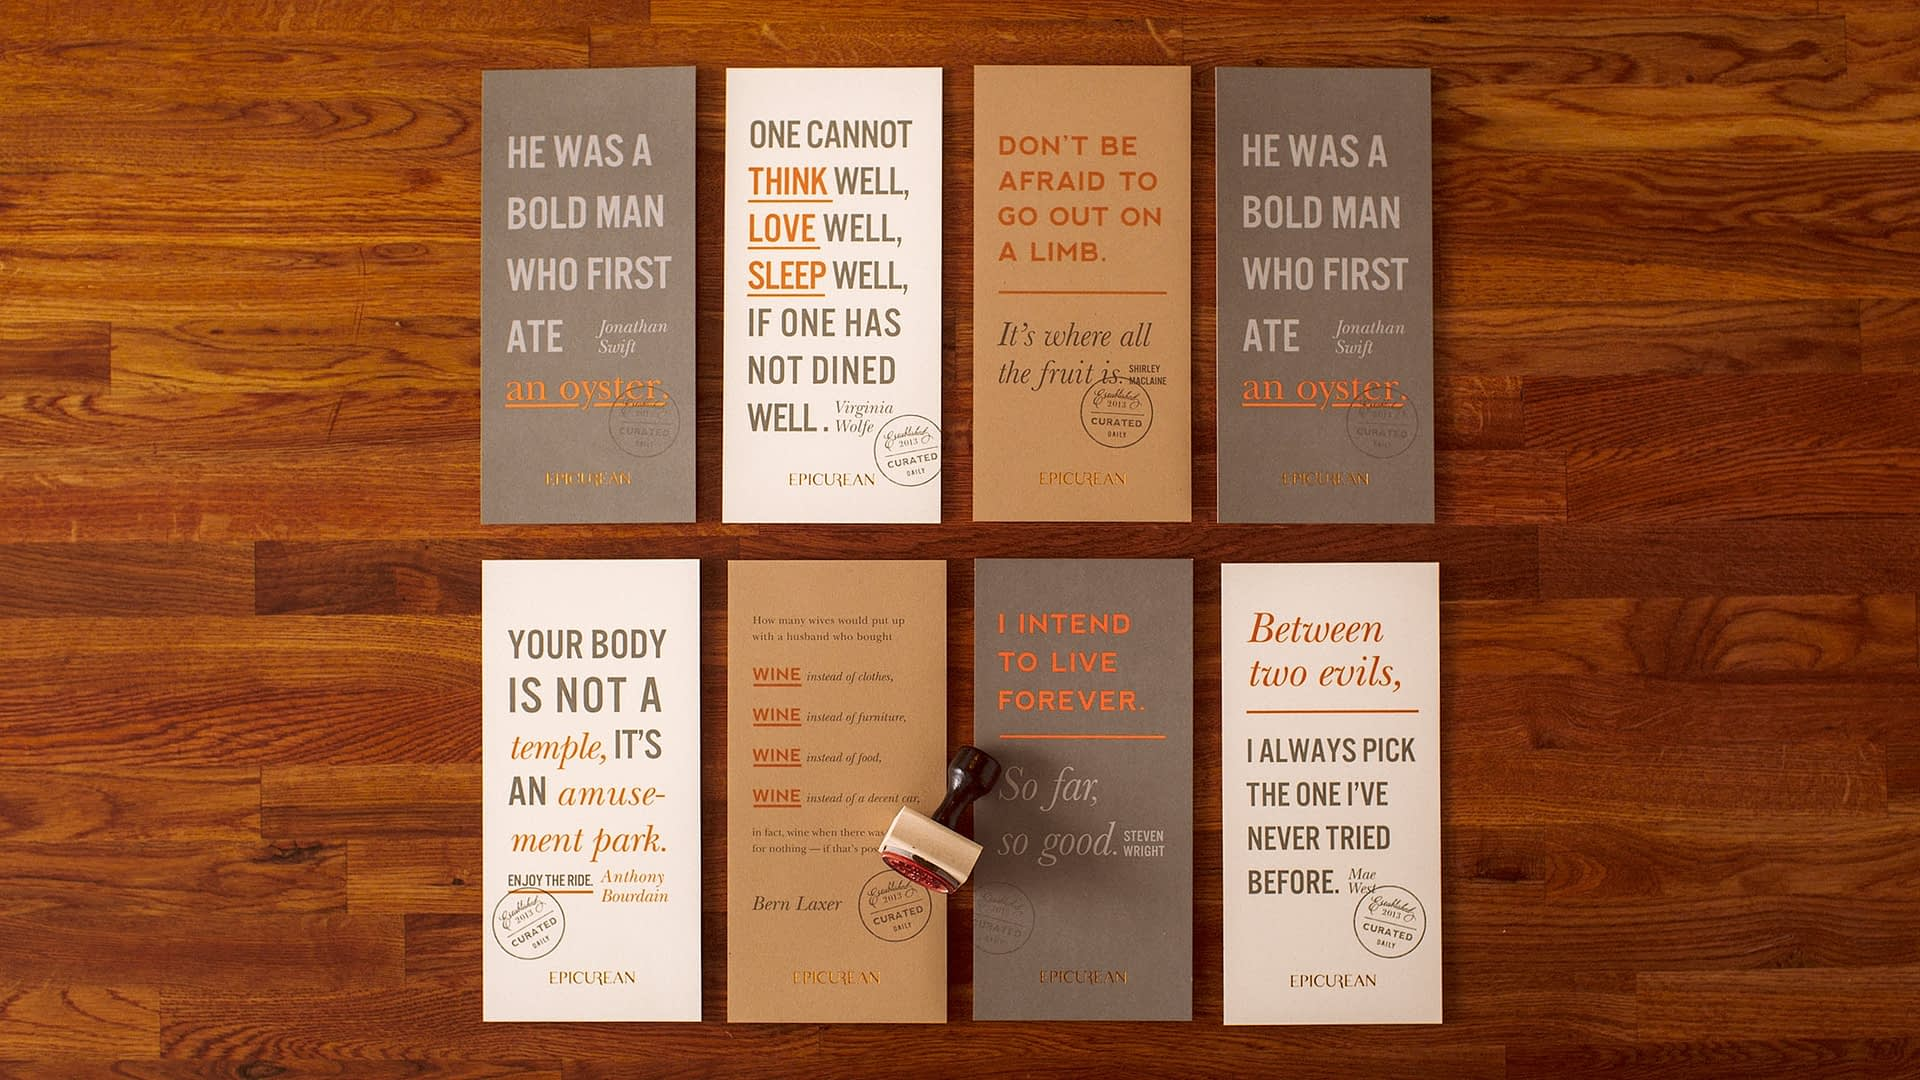 Epicurean Hotel branded quote cards